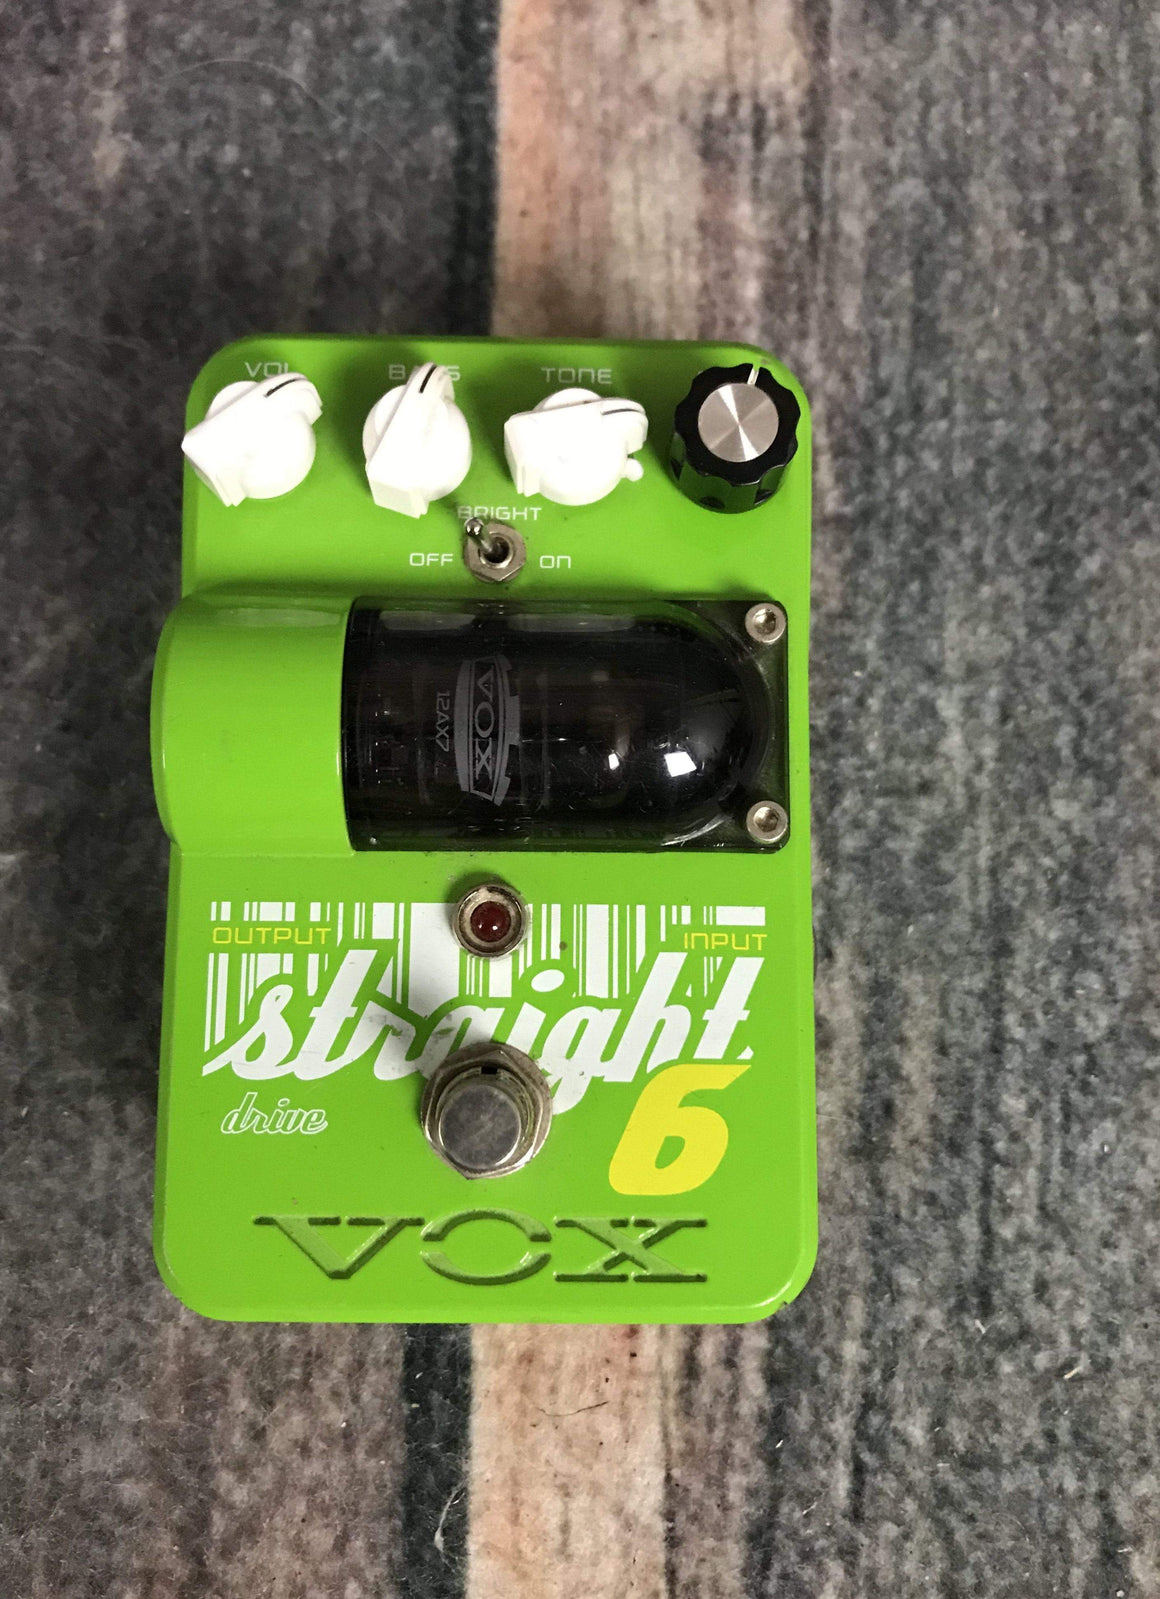 Vox pedal Used Vox Straight 6 Overdrive Pedal